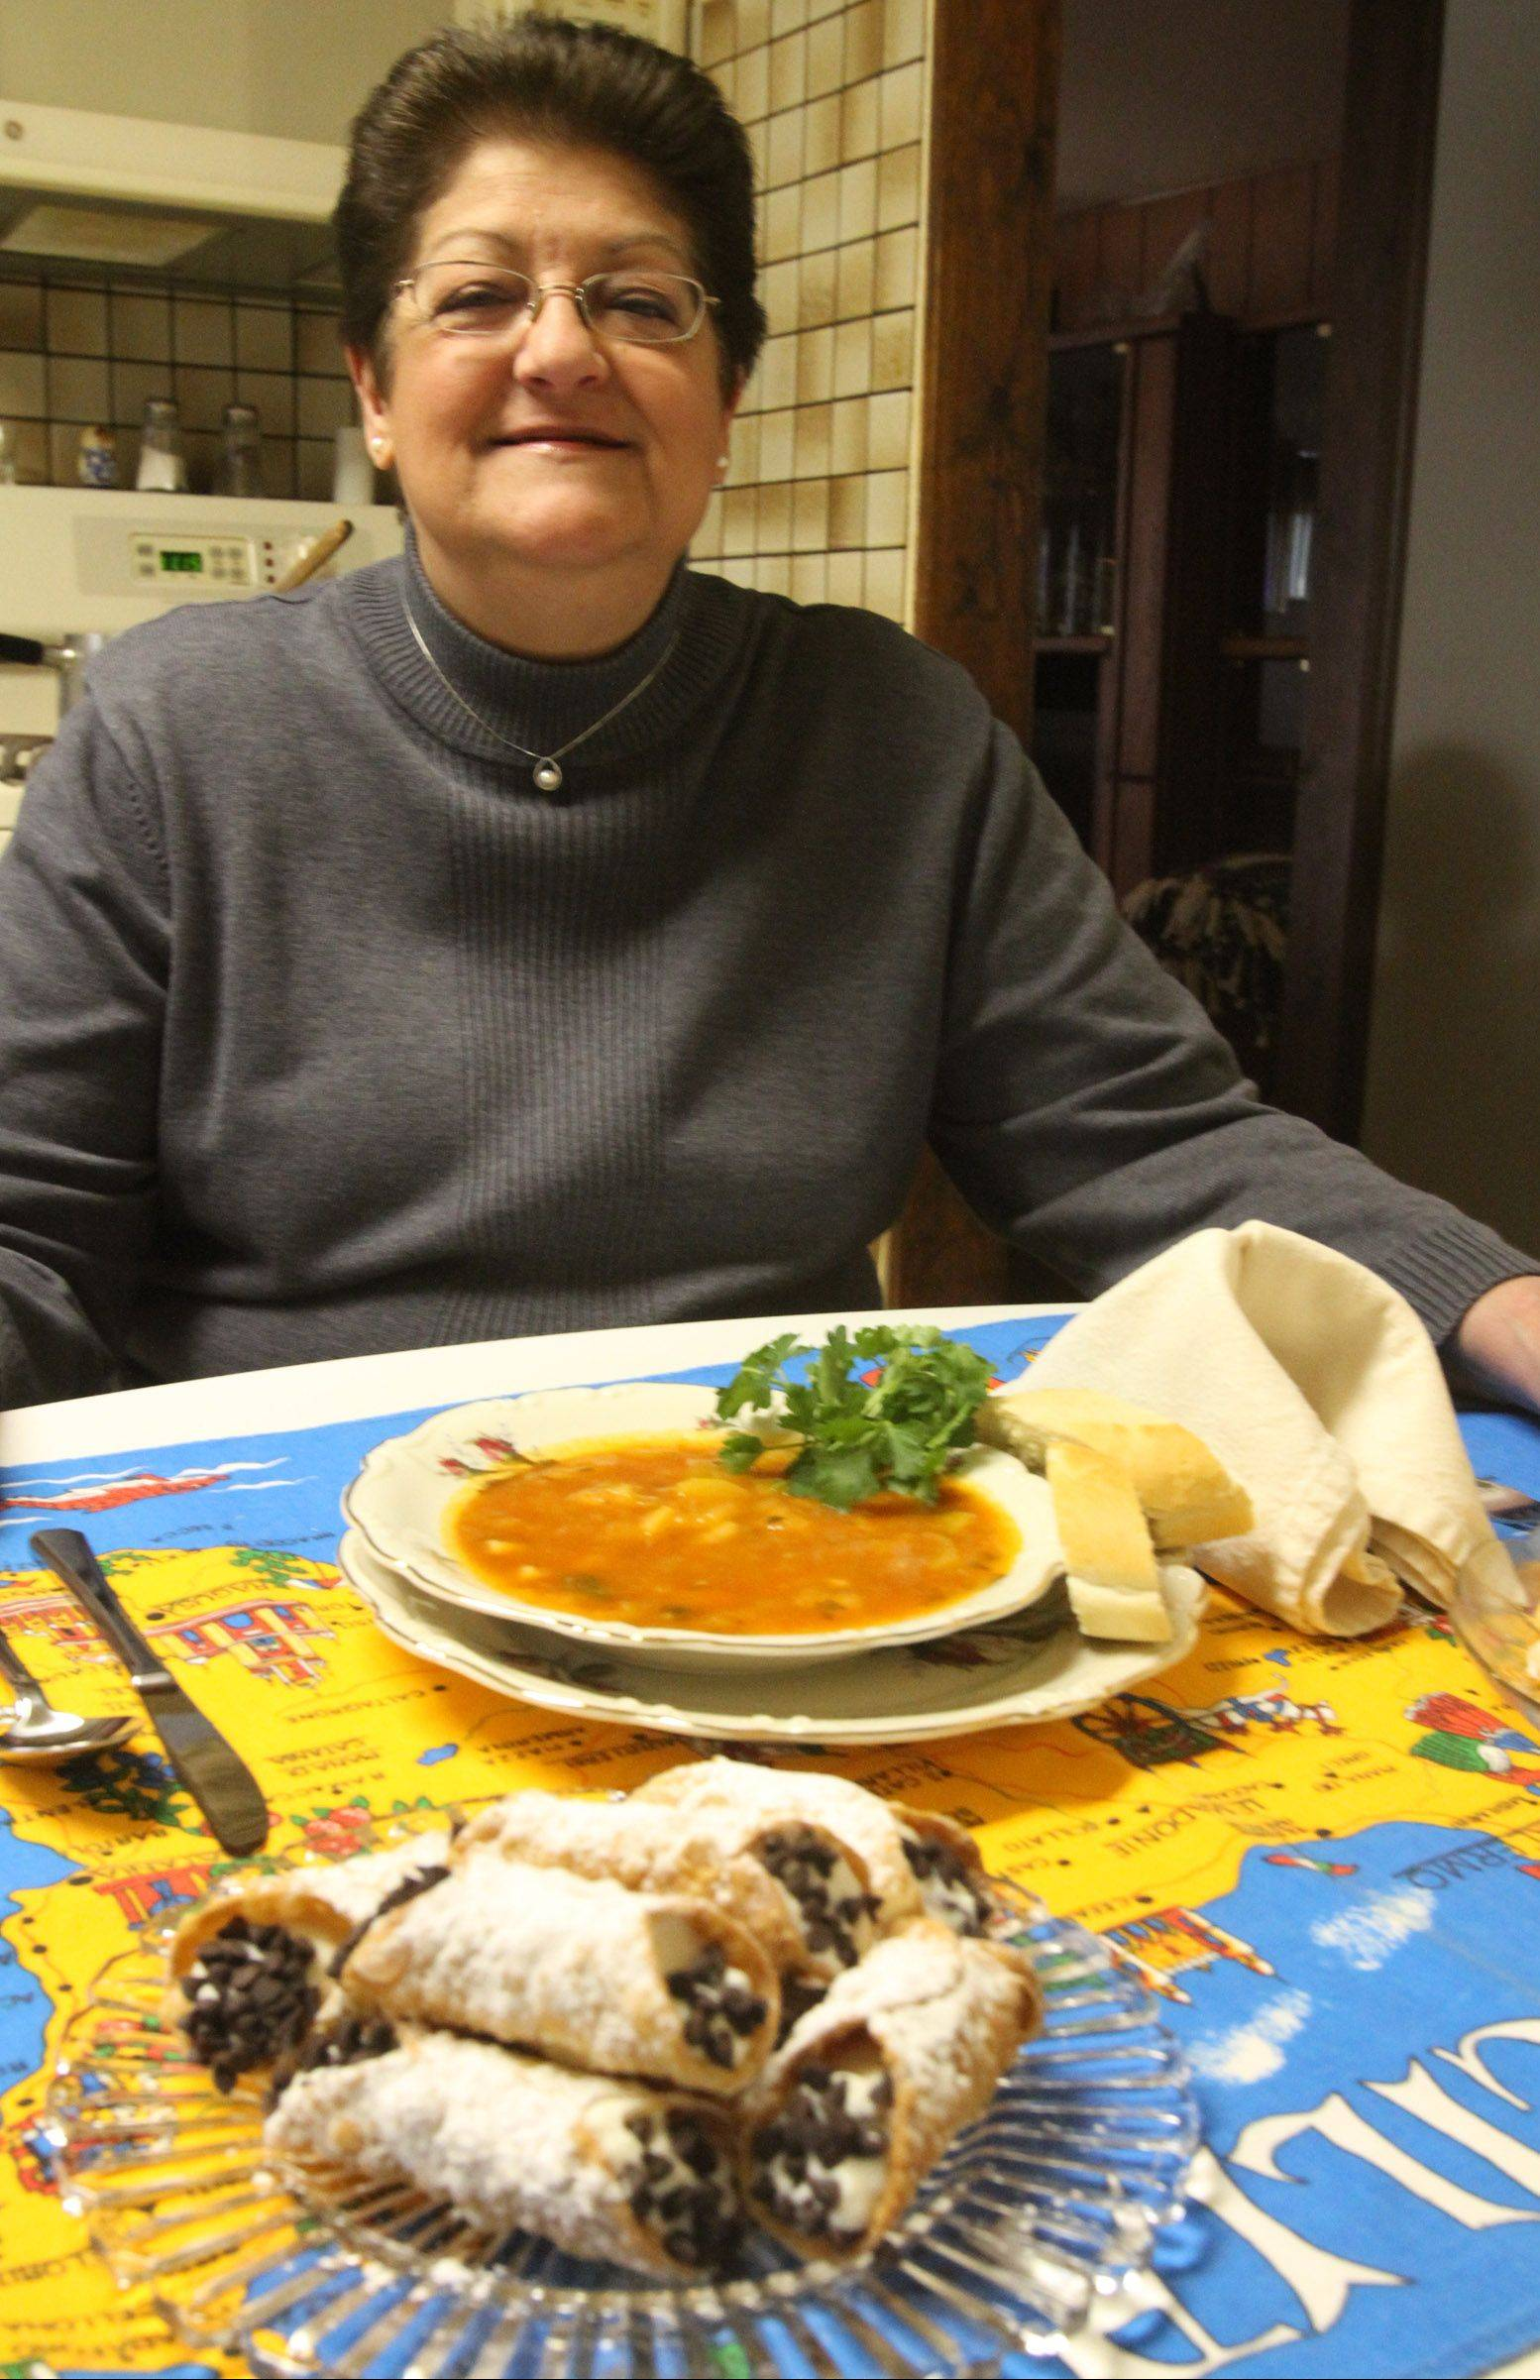 Angie Gergen makes Italian favorites zucchini soup, Italian cookies and canolli in her Hoffman Estates kitchen.